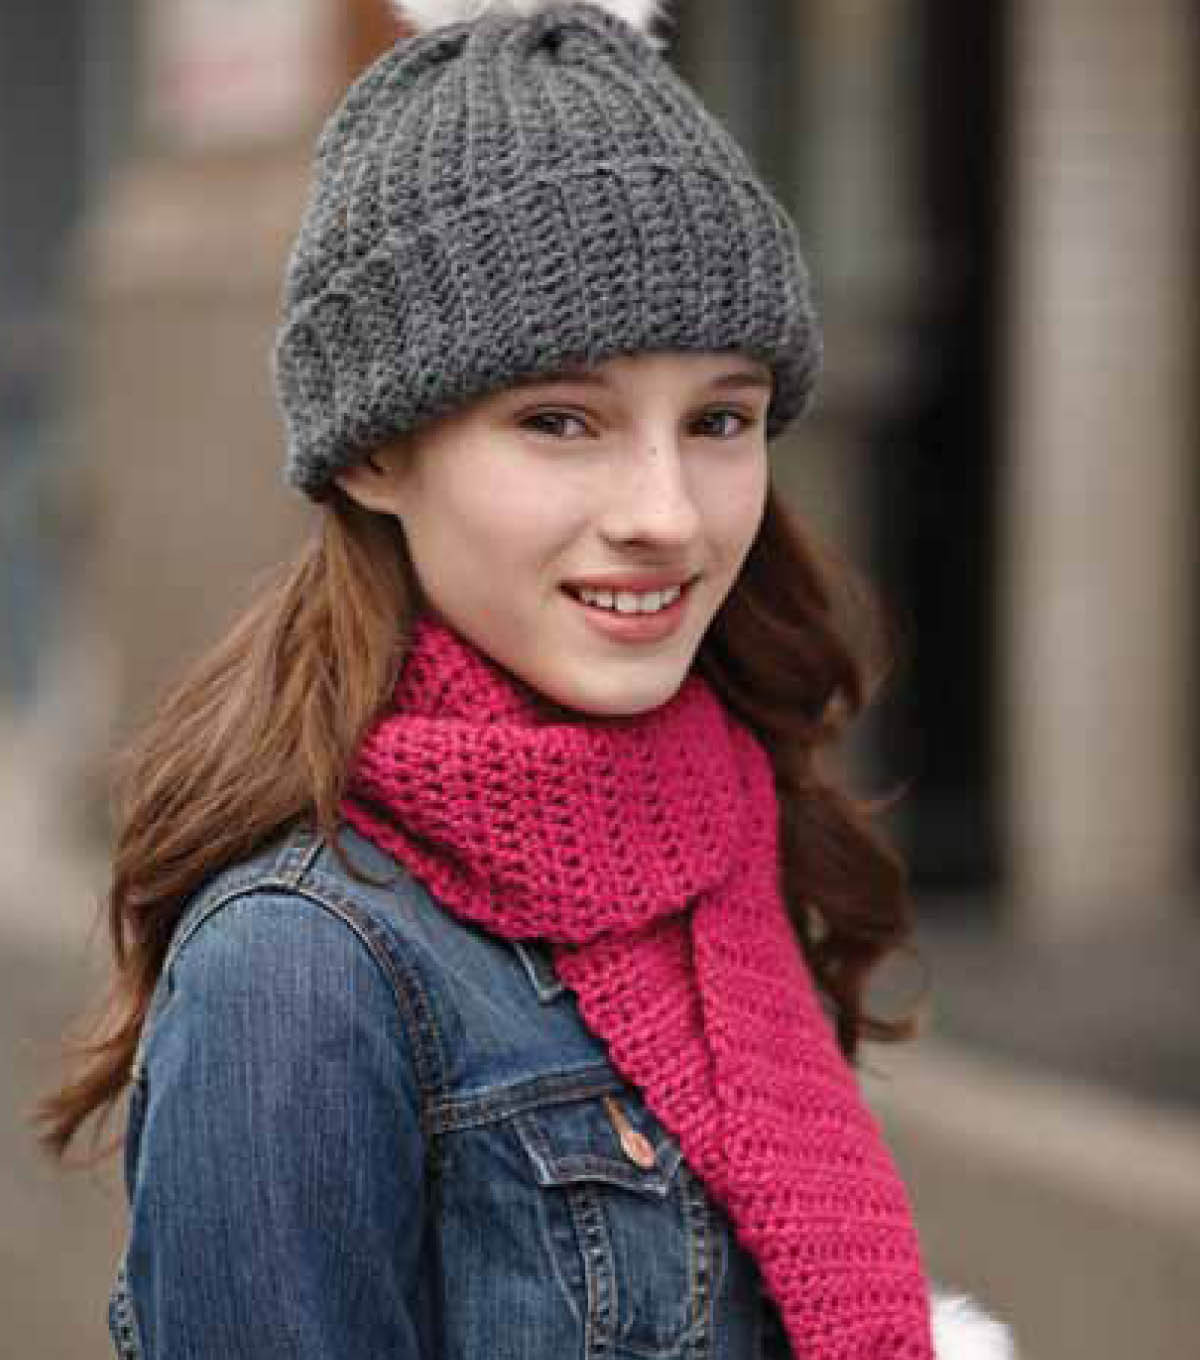 New Adult S Easy Crochet Hat and Scarf Joann Crochet Hat and Scarf Of Superb 50 Pics Crochet Hat and Scarf